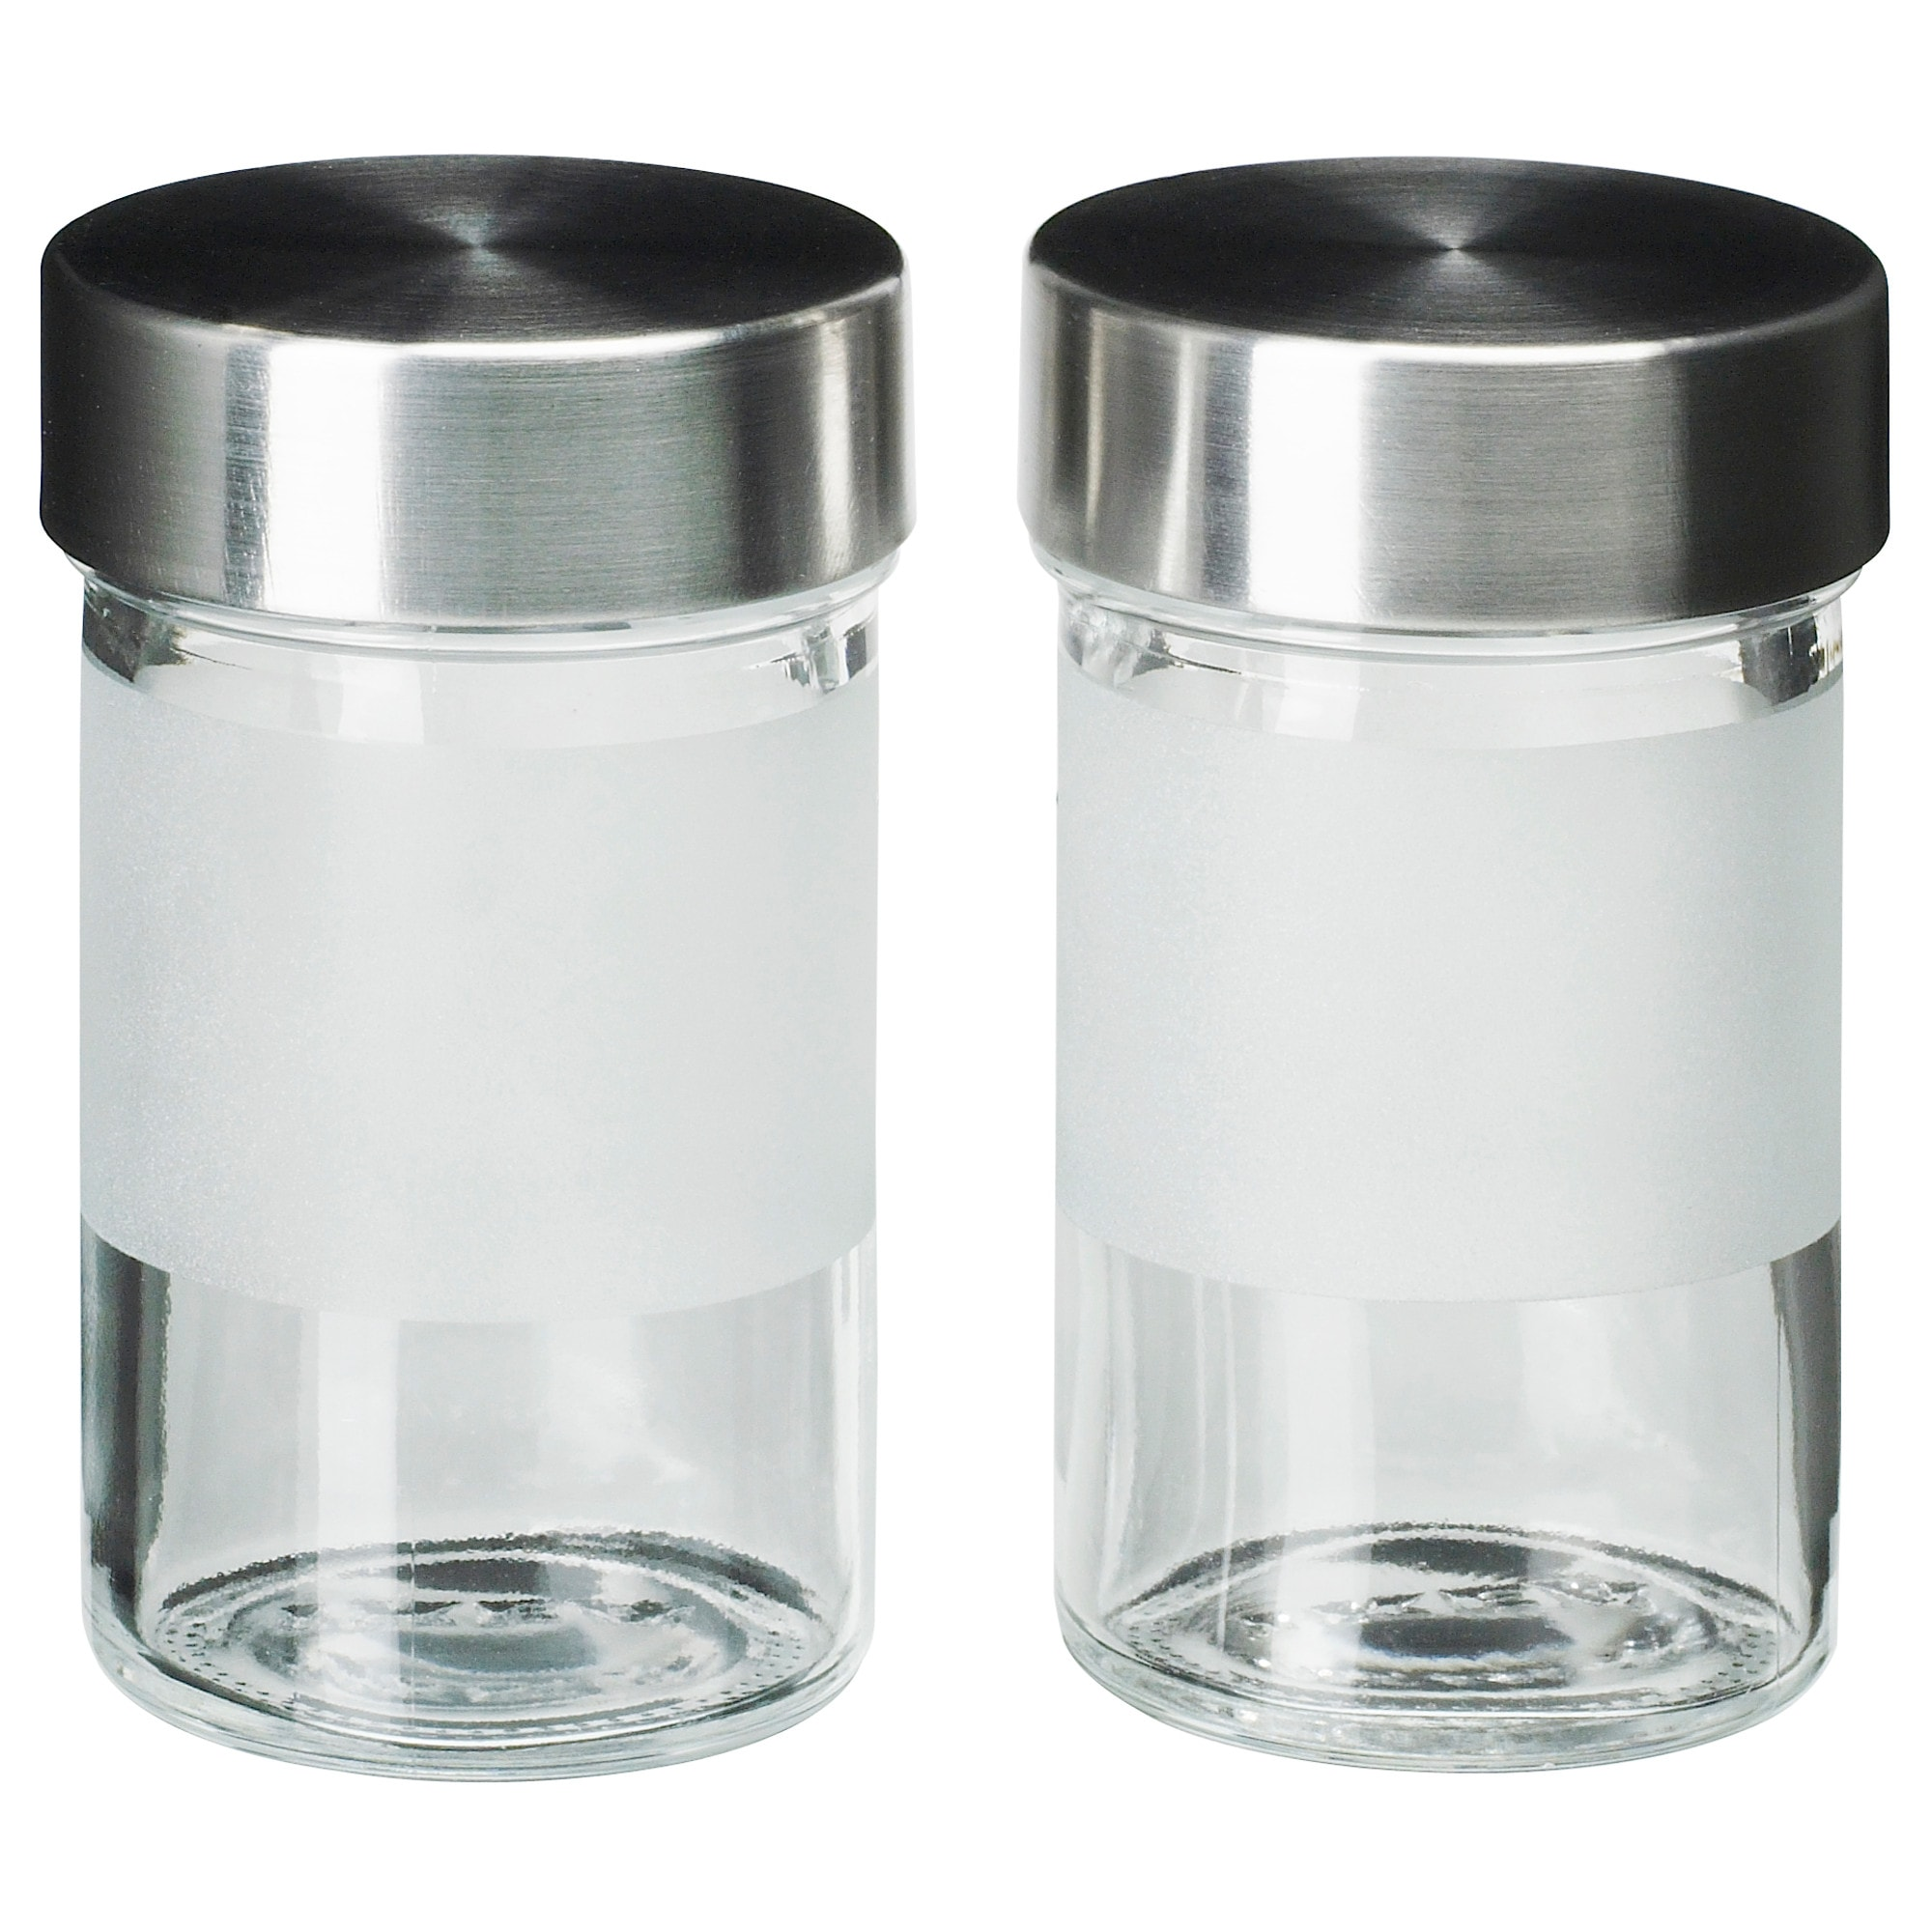 Stainless steel storage containers for kitchen - Droppar Spice Jar Frosted Glass Stainless Steel Height 4 Diameter 2